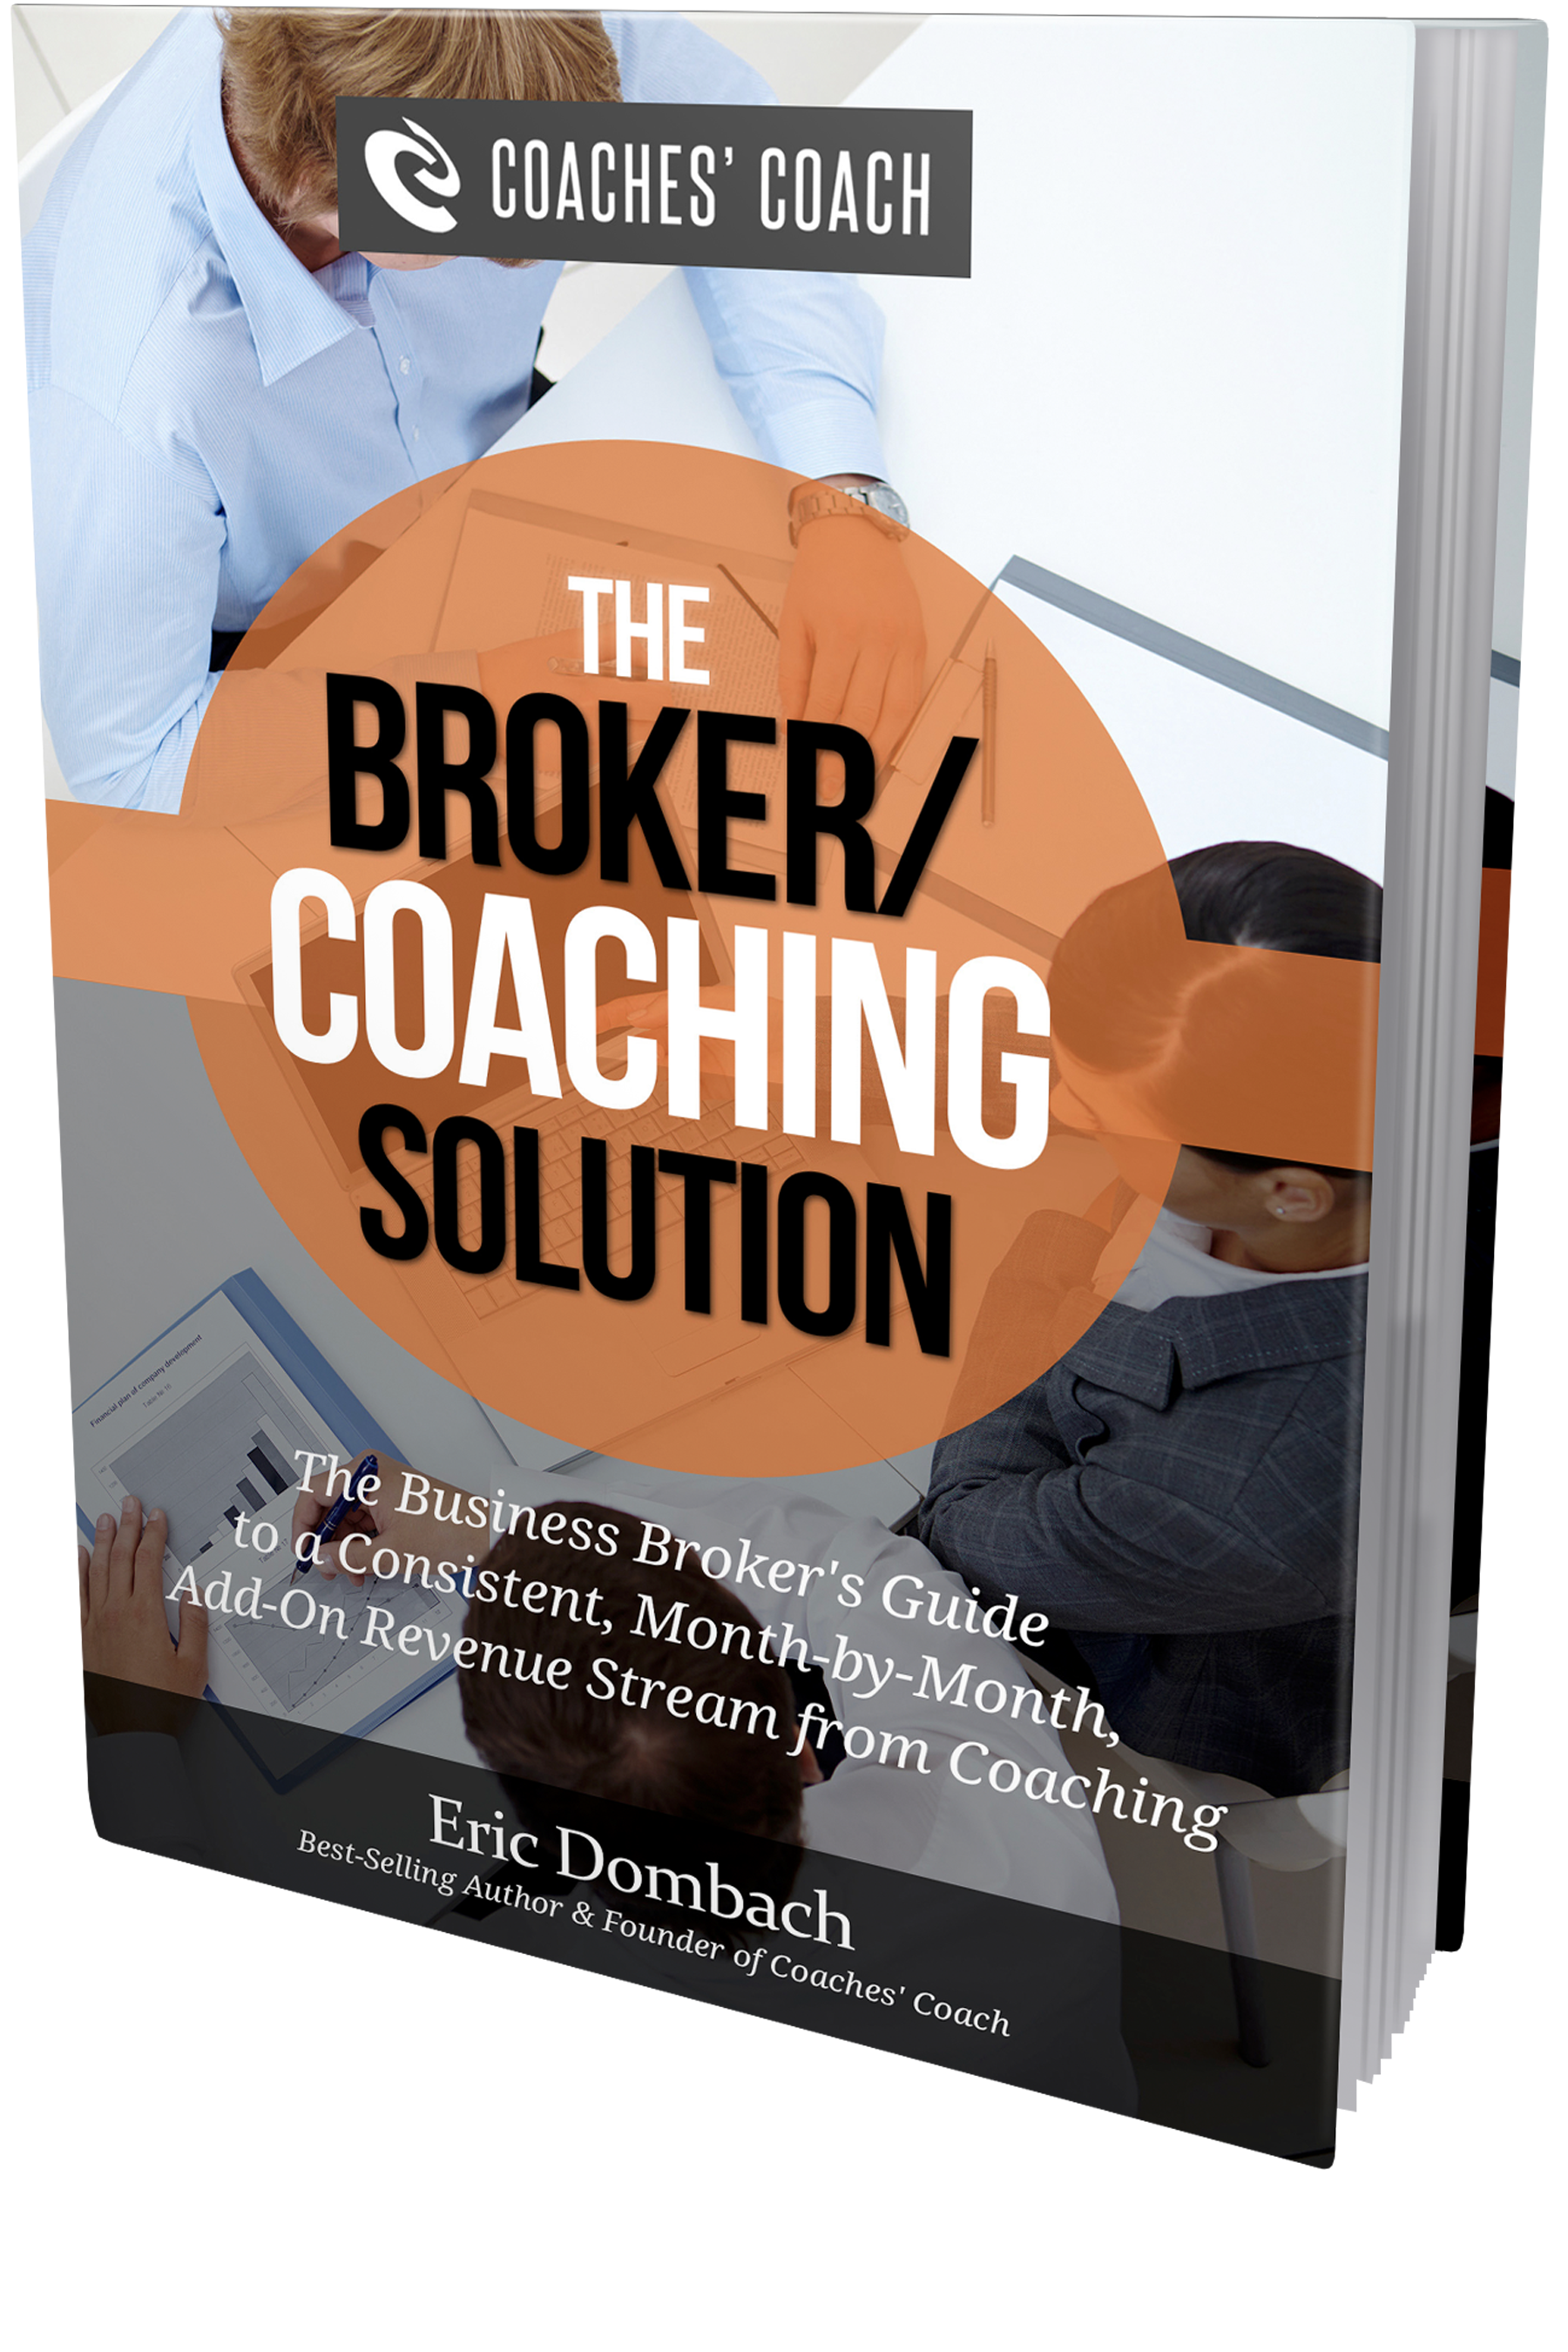 The Broker/Coaching Solution